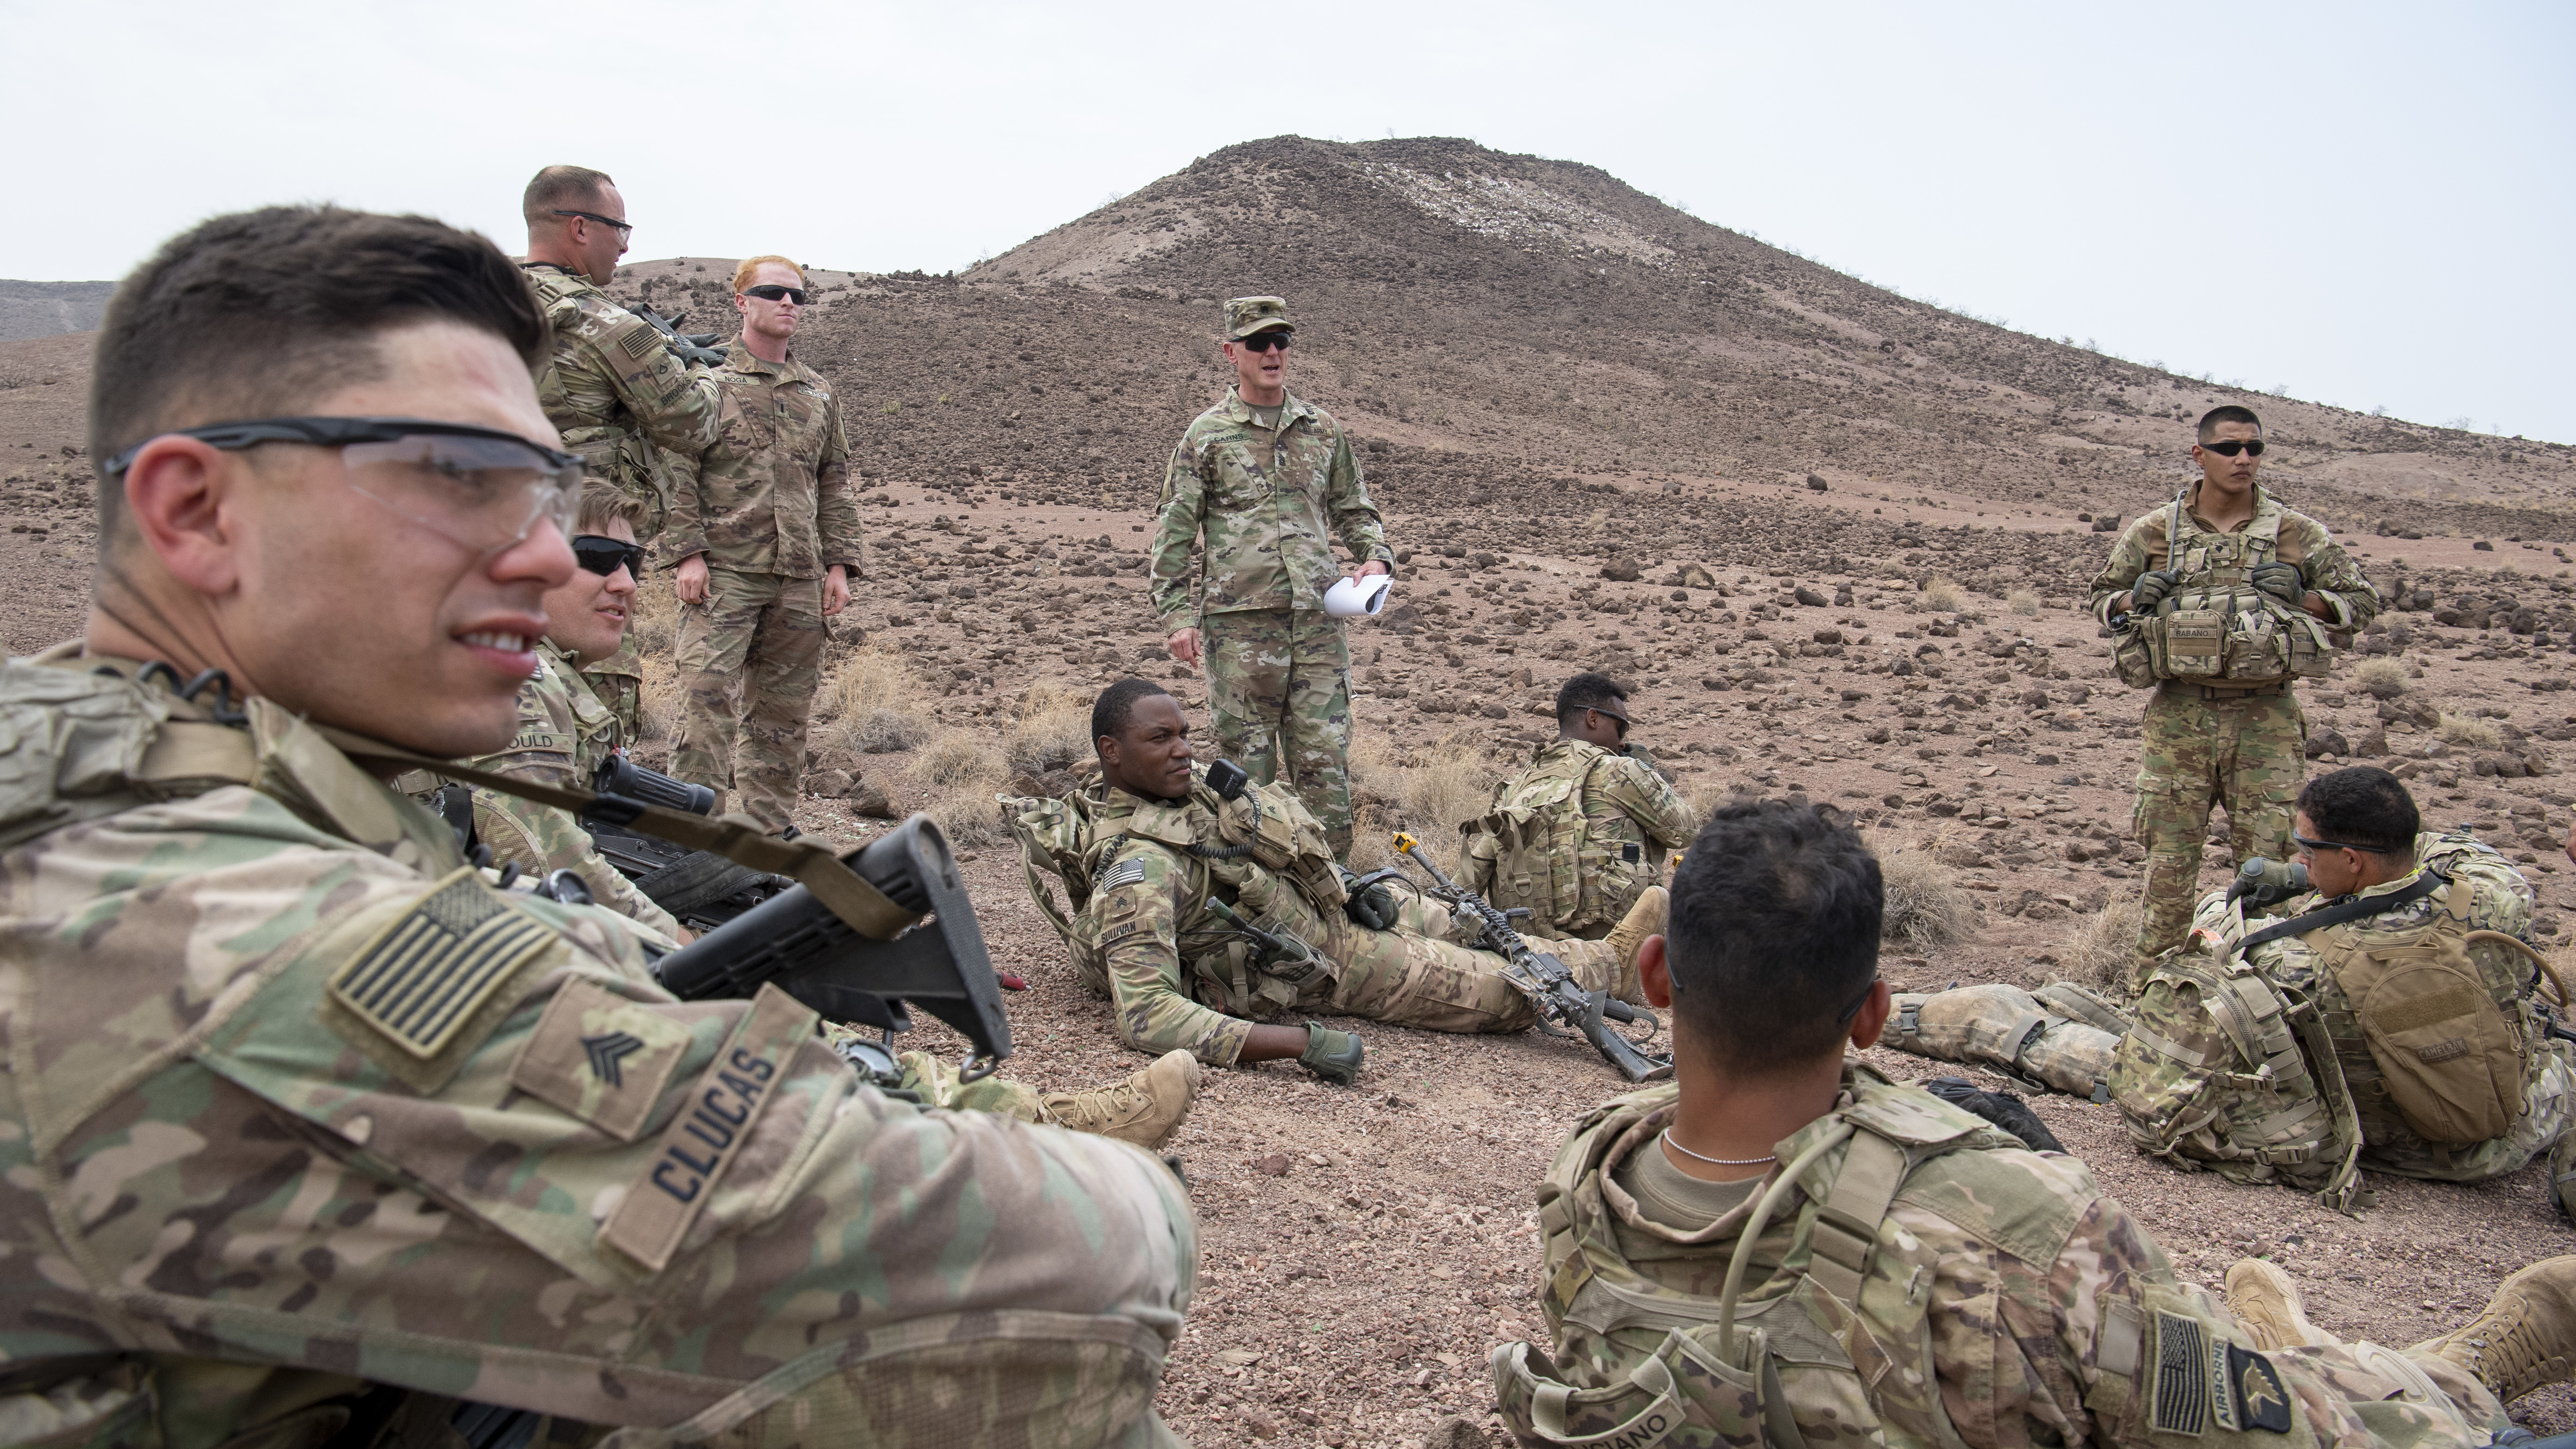 U.S. Army Command Sgt. Maj. Shawn Carns, command senior enlisted leader (SEL), Combined Joint Task Force-Horn of Africa (CJTF-HOA), visits U.S. Army Soldiers from the East Africa Response Force (EARF), deployed in support of CJTF-HOA, during his battlefield circulation visit at Arta Range, Djibouti, Aug. 26, 2019. Battlefield circulation visits allow Carns to meet with units within CJTF-HOA's combined joint operations area for familiarization and rapport-building. (U.S. Air Force photo by Staff Sgt. J.D. Strong II)